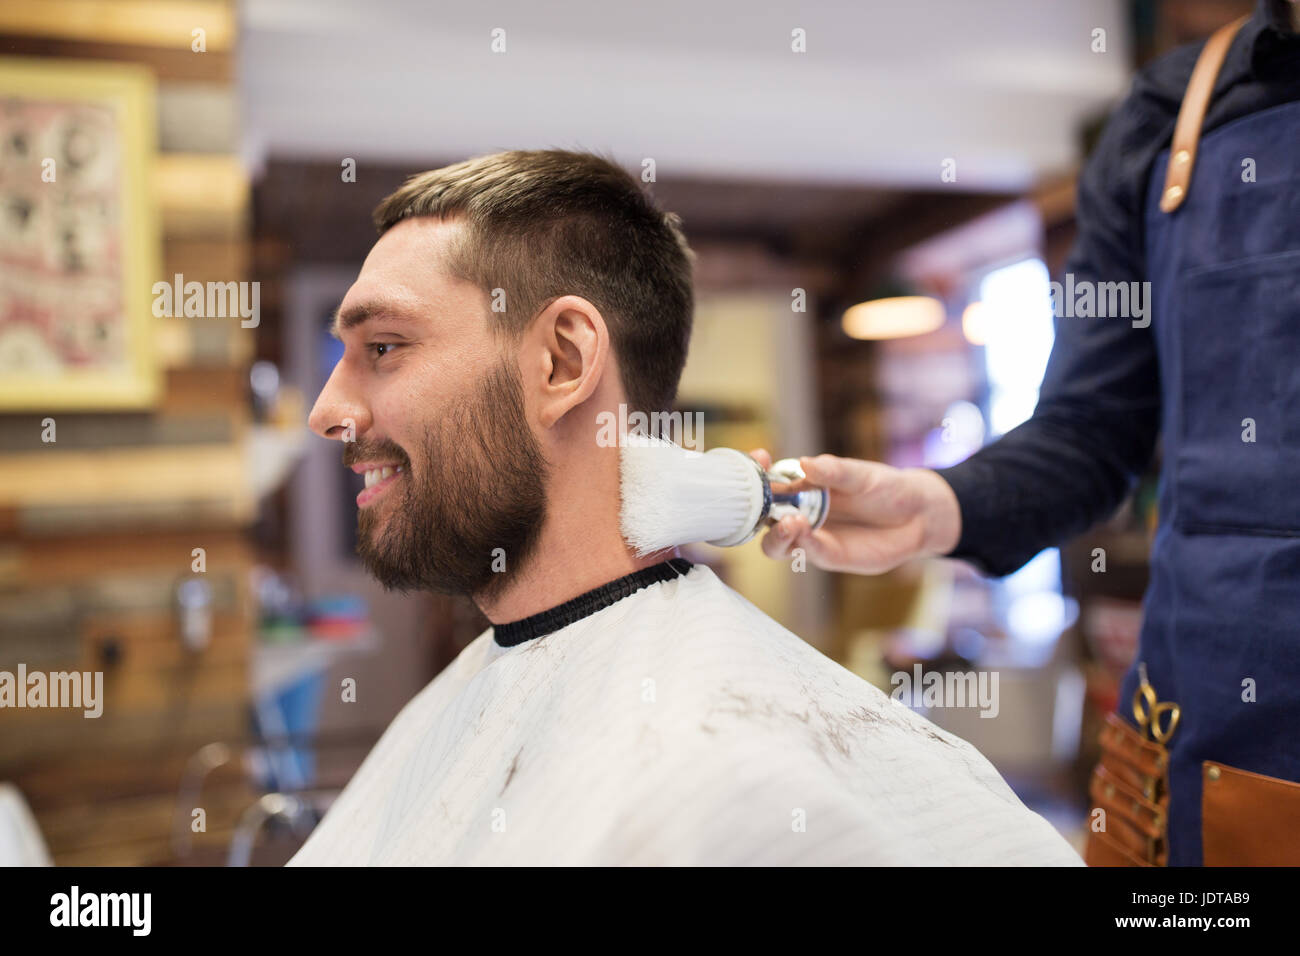 barber with brush cleaning male neck at barbershop - Stock Image